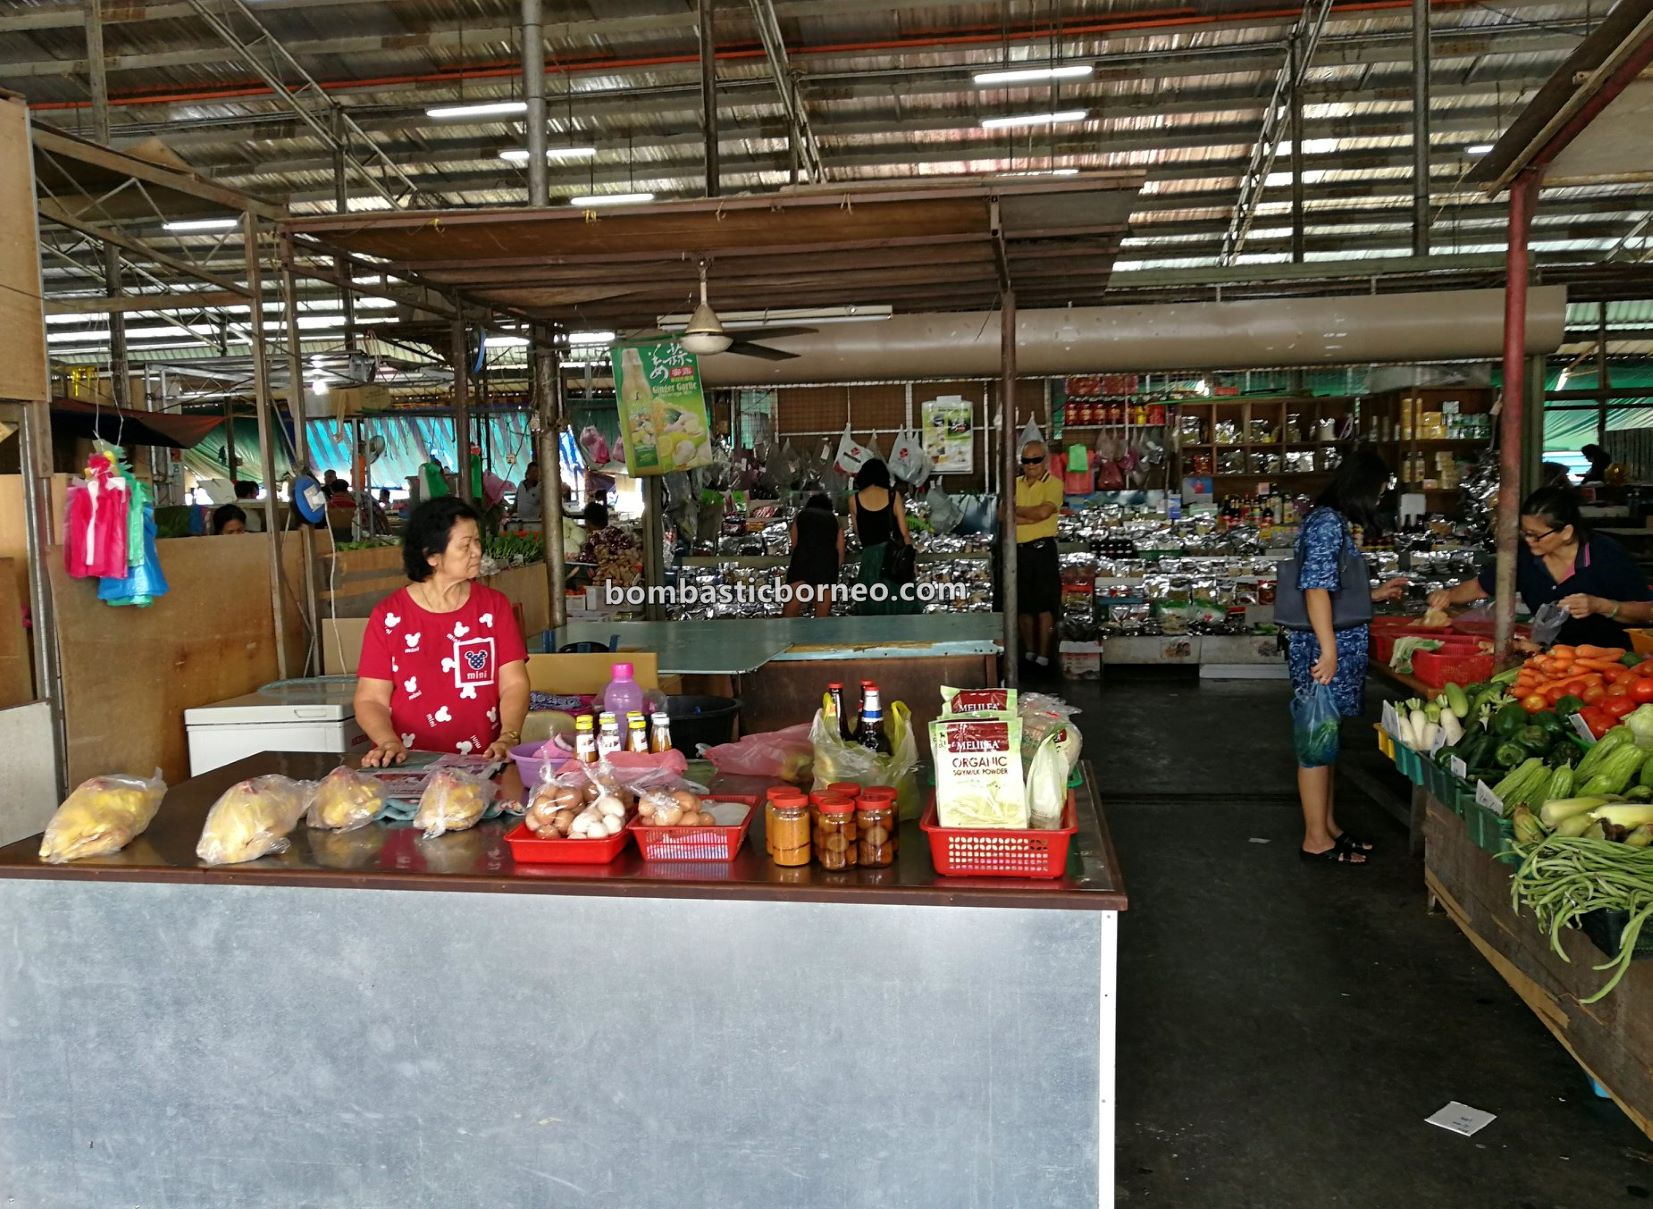 local market, backpackers, destination, exploration, fish, food court, sayuran, vegetables, Borneo, Malaysia, Sabah, travel guide, 穿越婆罗洲沙巴, 新安综合巴刹, 斗湖早市,